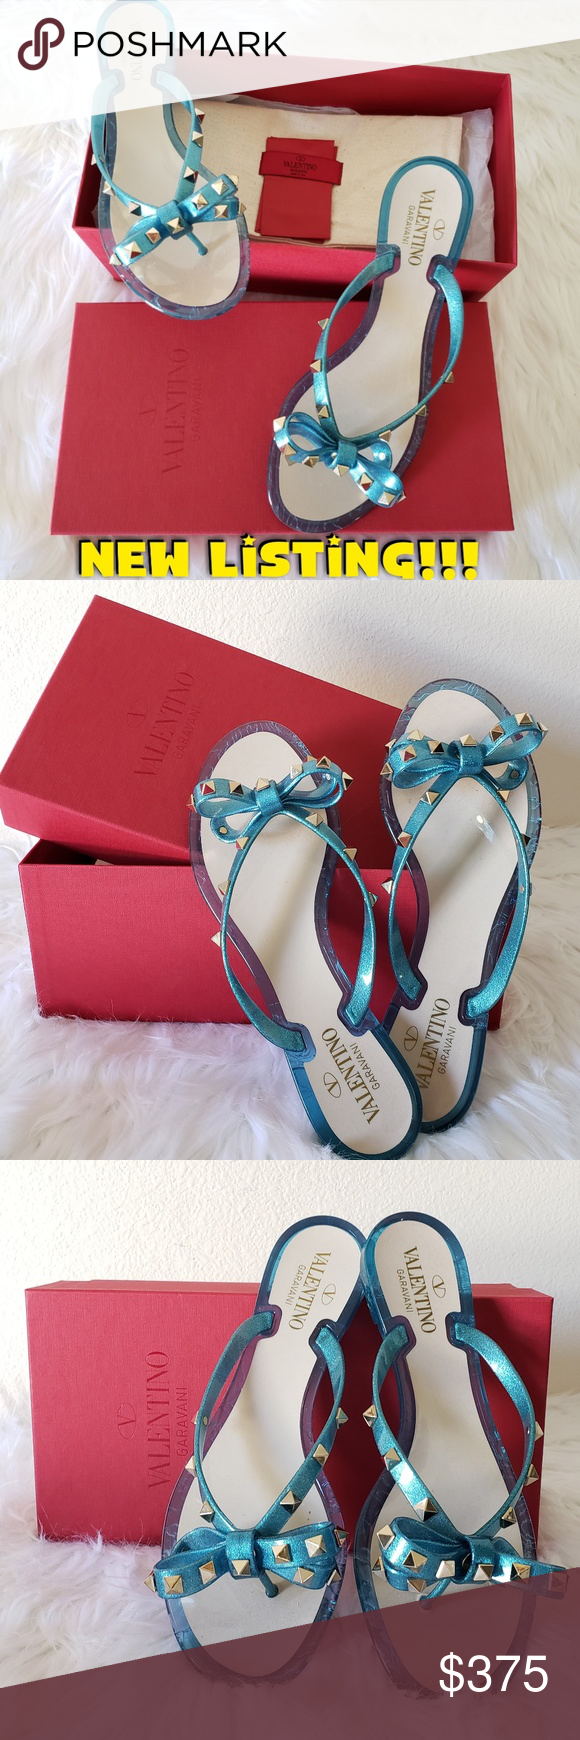 4114b20a7 AUTHENTIC VALENTINO ROCKSTUD JELLY THONG FLIPFLOP SIZE 39 ( US 8 ) Valentino  Garavani jelly PVC